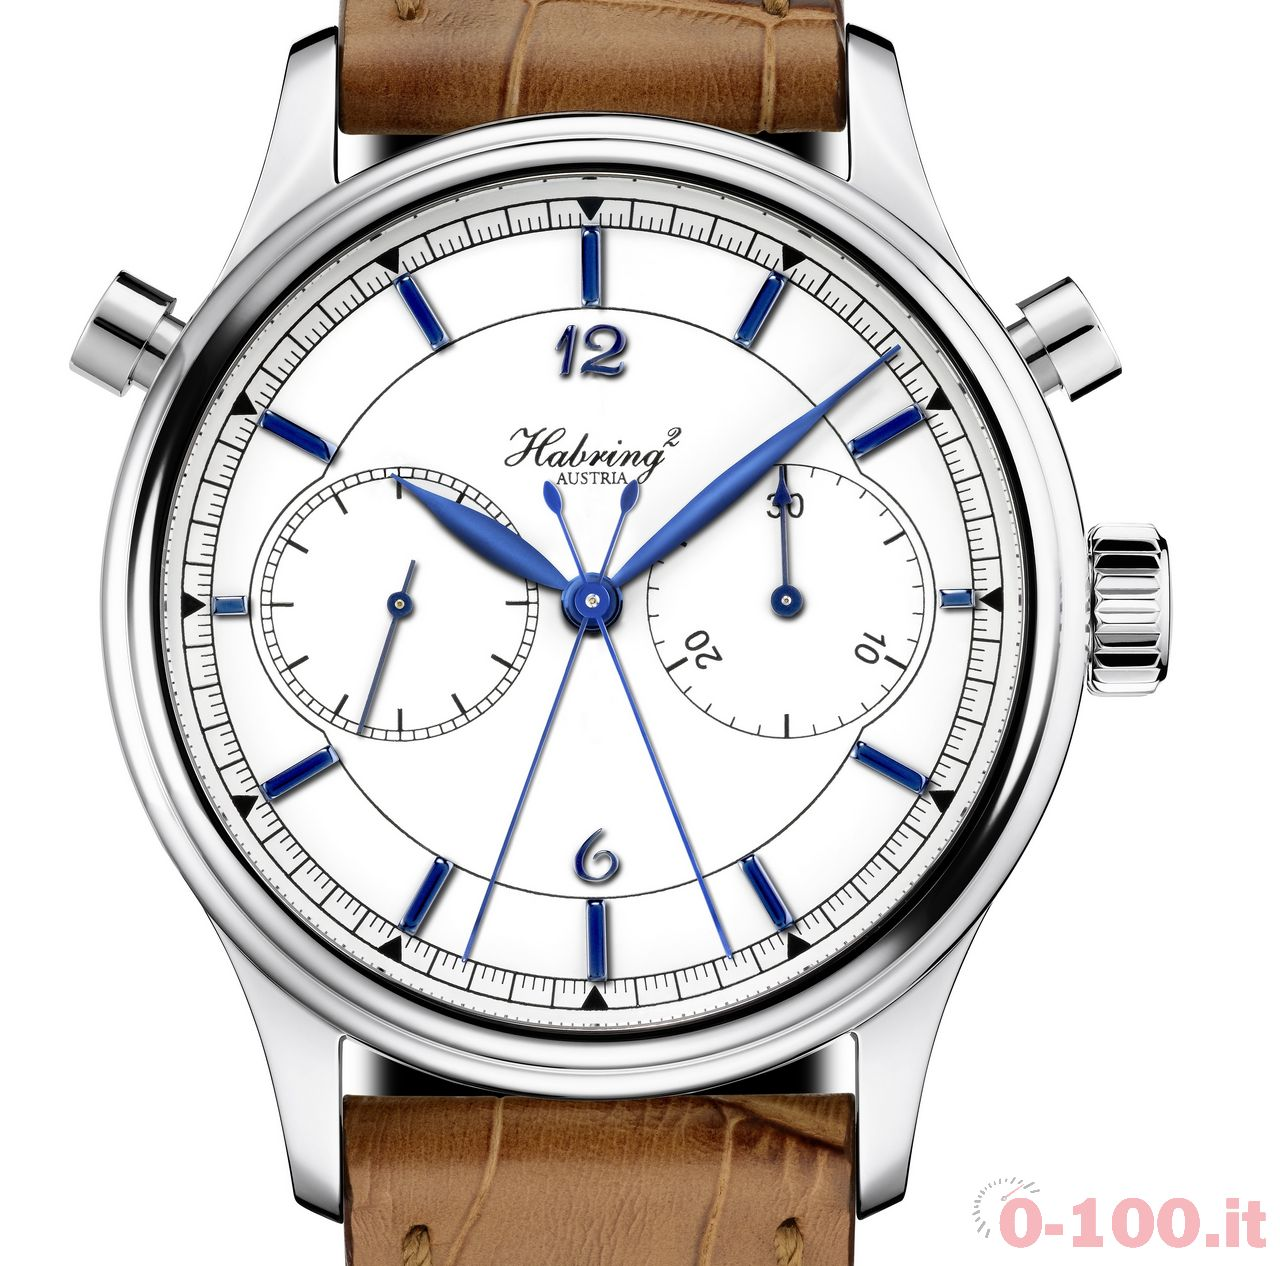 habring²-splitsecond-chronograph-limited-edition-horlogerie-suisse-com_0-1005